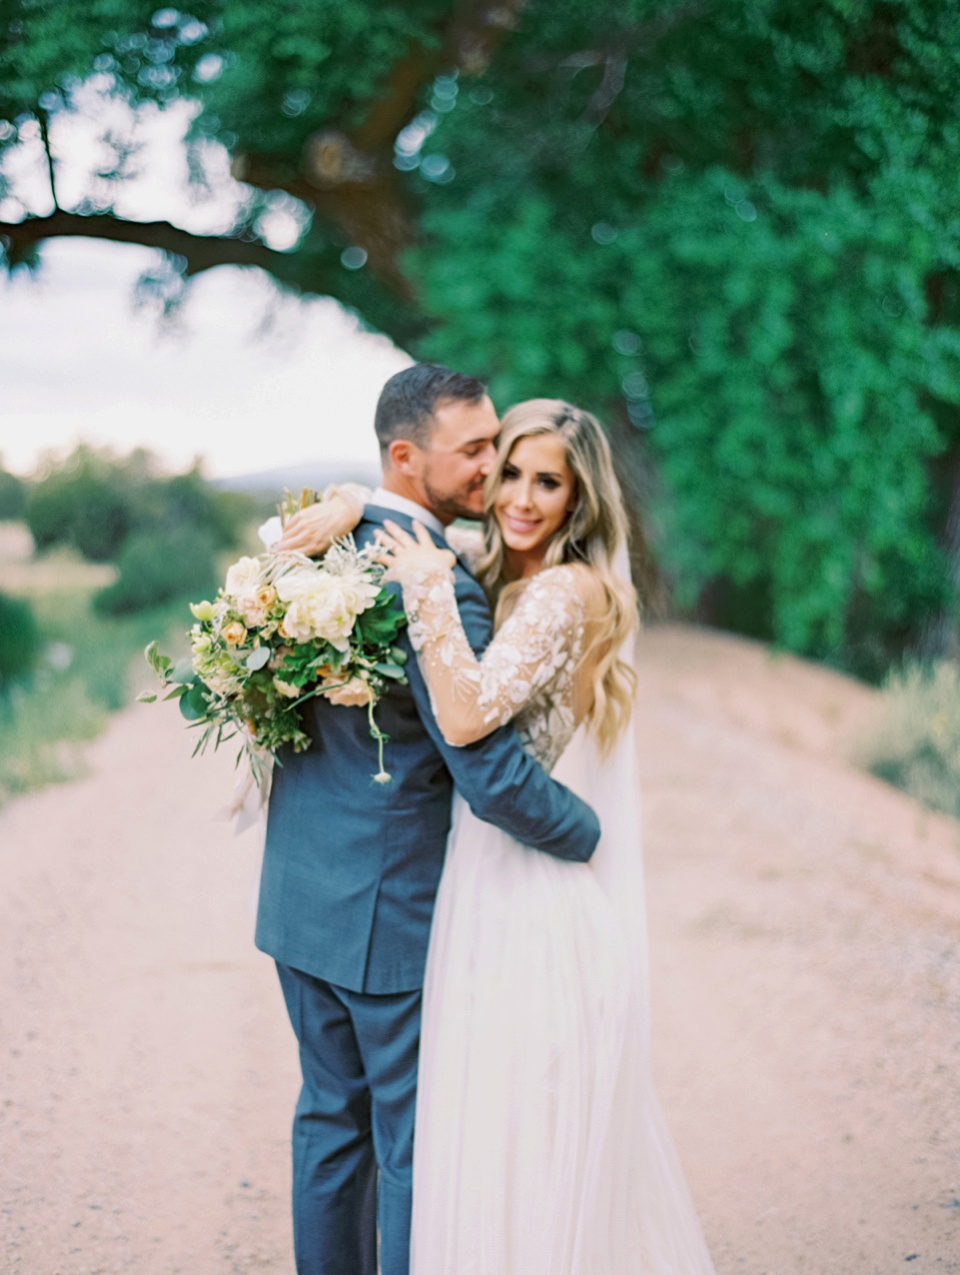 Becca Lea Photography | Santa Fe, New Mexico Wedding Photographer